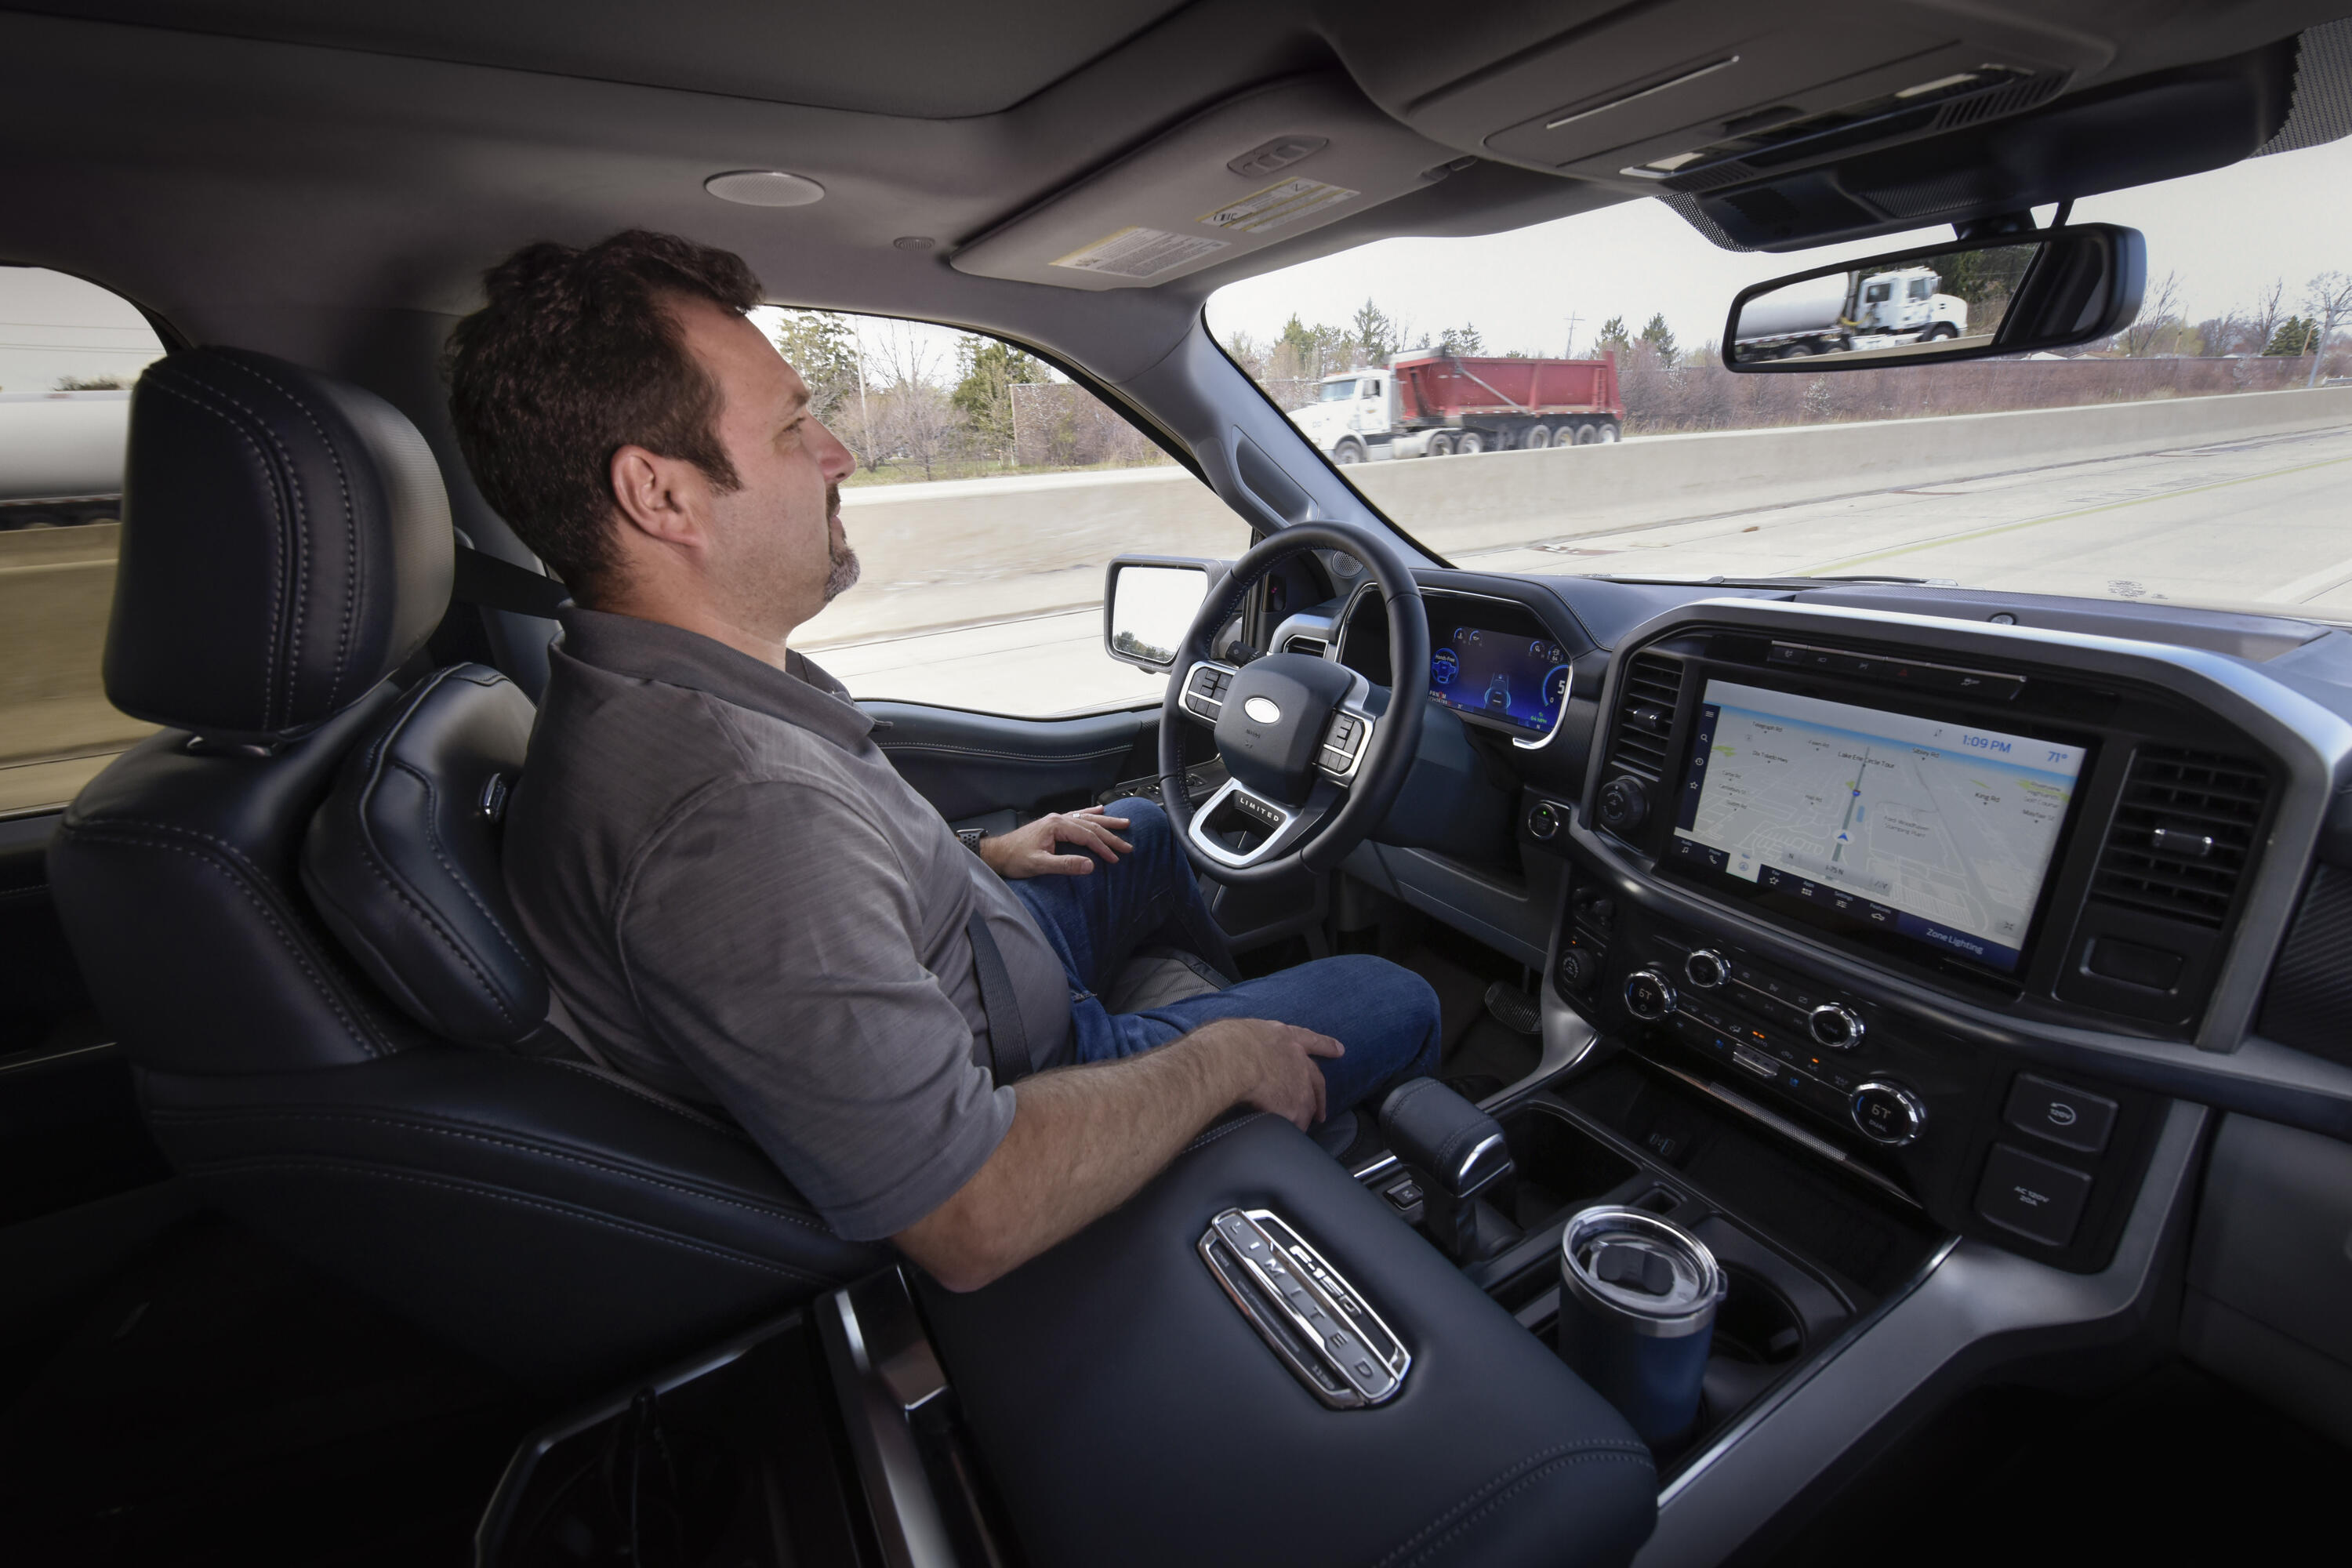 Ford BlueCruise - hands-free driving